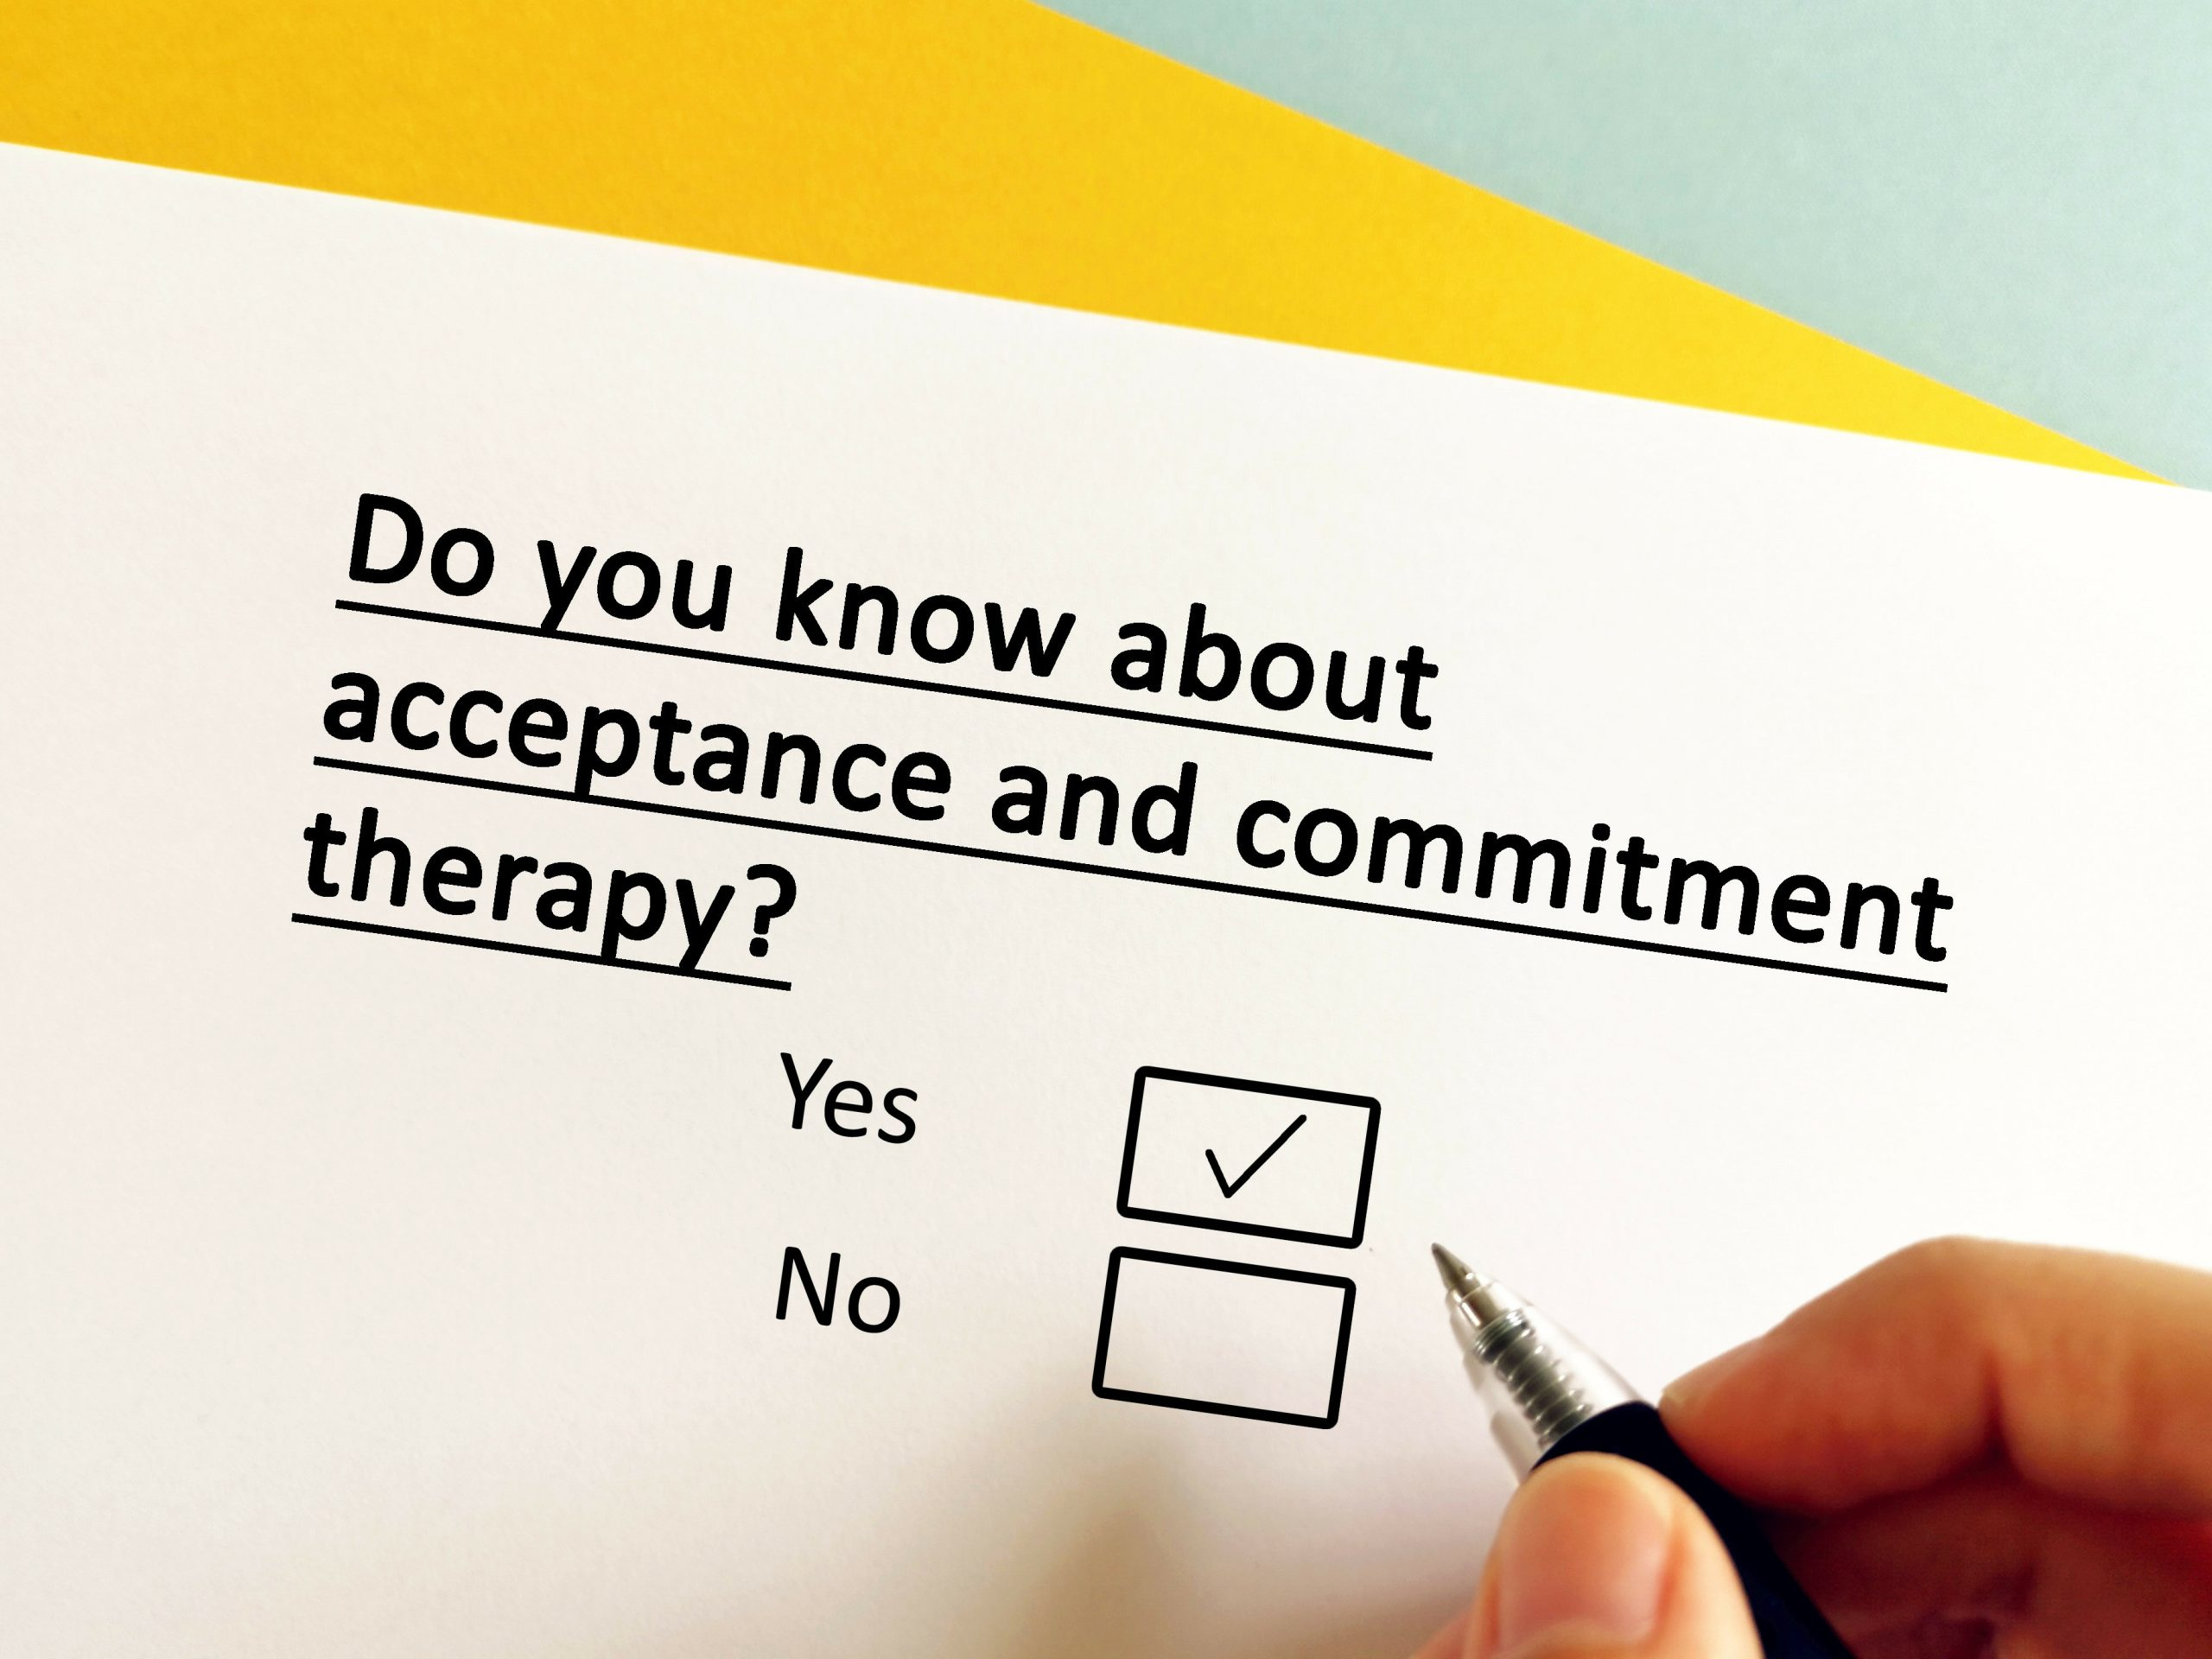 Acceptance and commitment therapy and PTSD